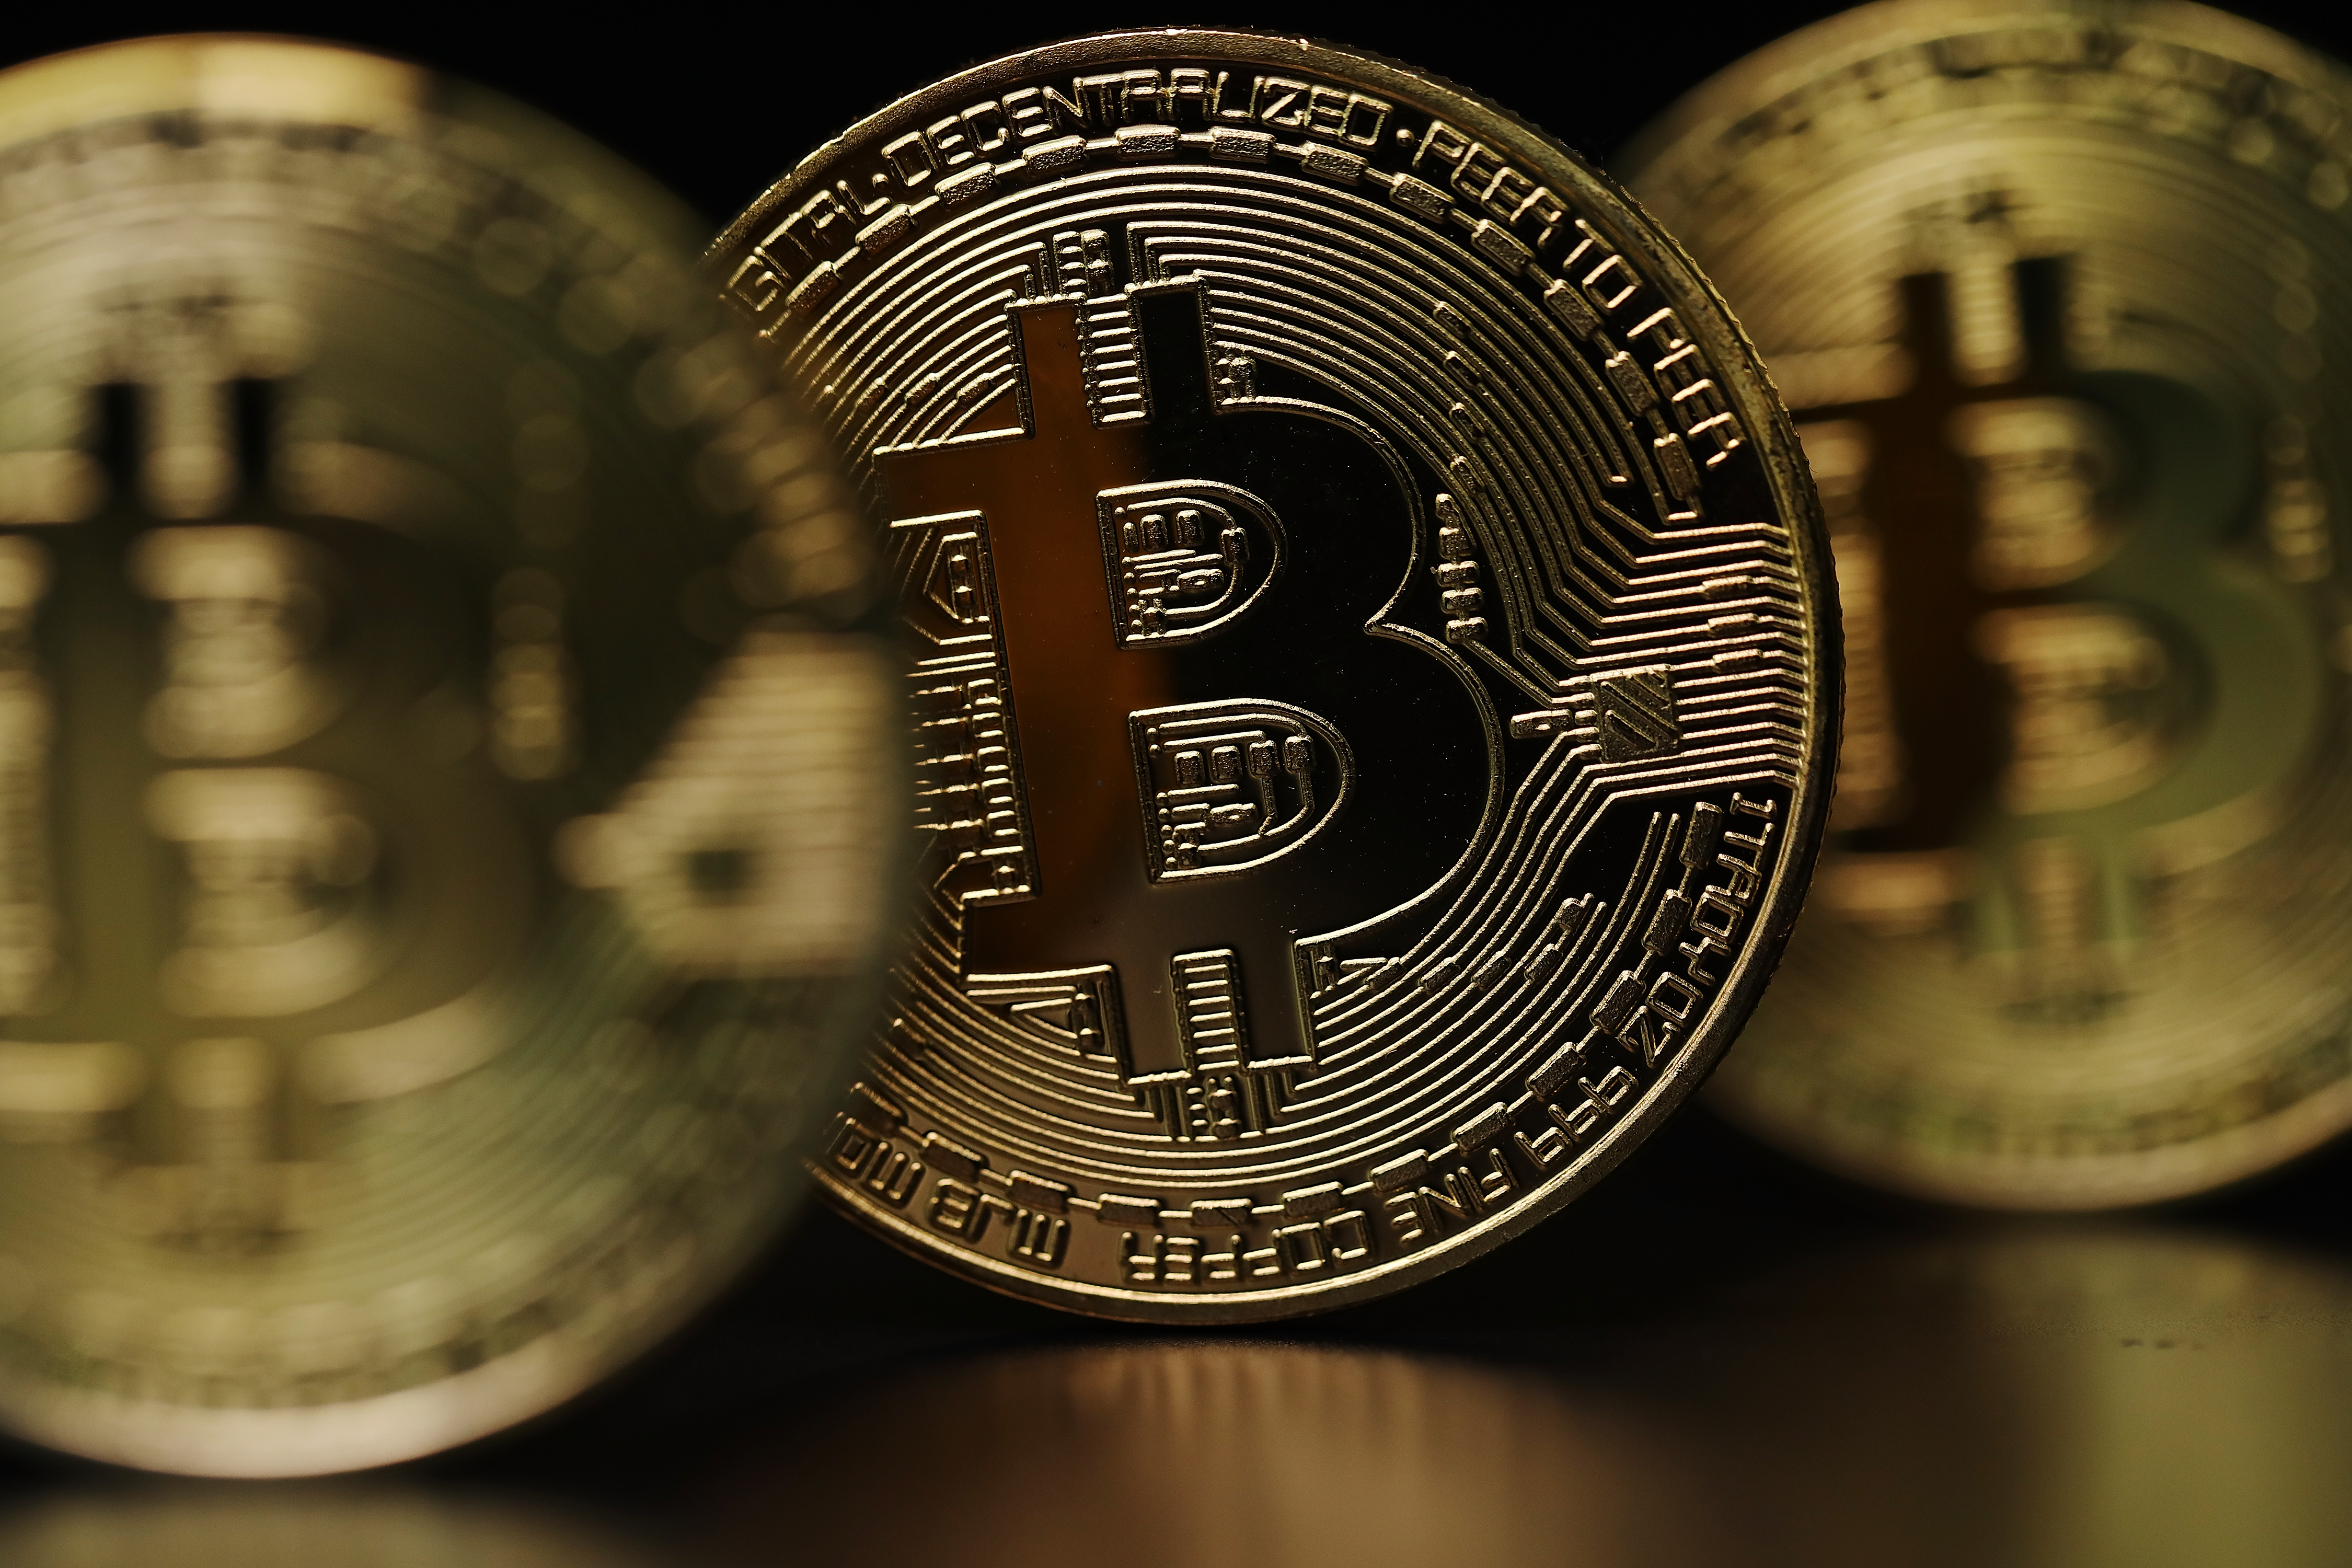 A bitcoin symbol —a combination of a capital B and a dollar sign — on a gold coin